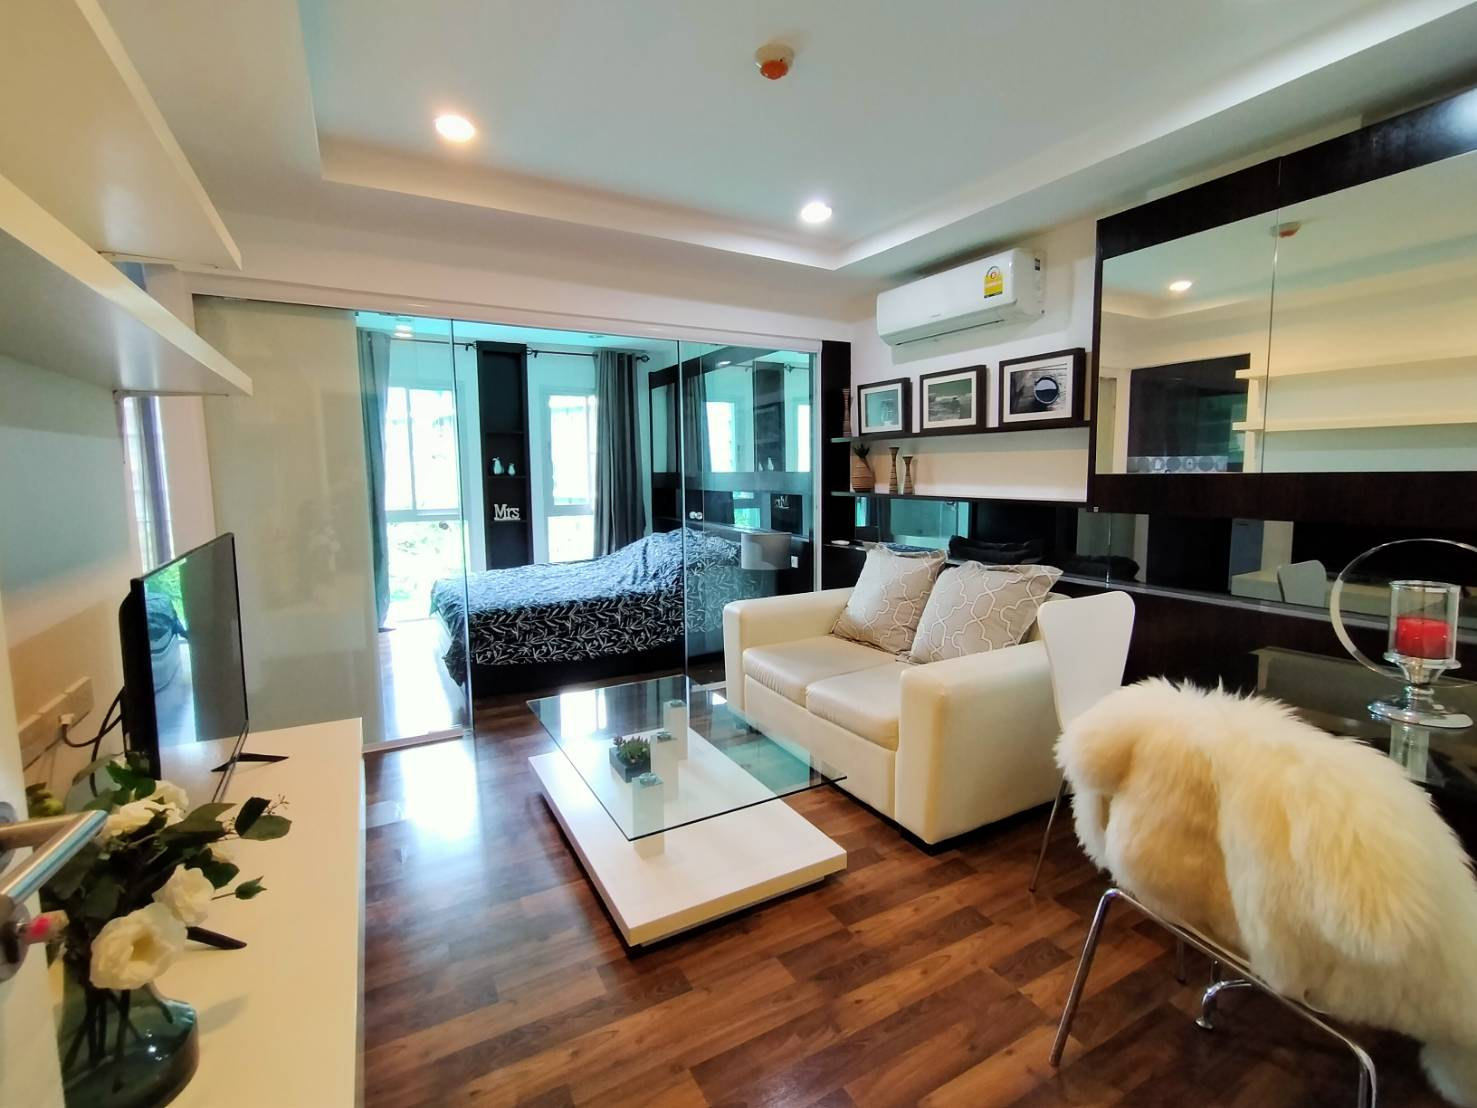 For RentCondoNawamin, Ramindra : Condo for rent at Parc Exo, Park Exo Kaset-Nawamin, Building E, swimming pool view Nice room, ready to move in